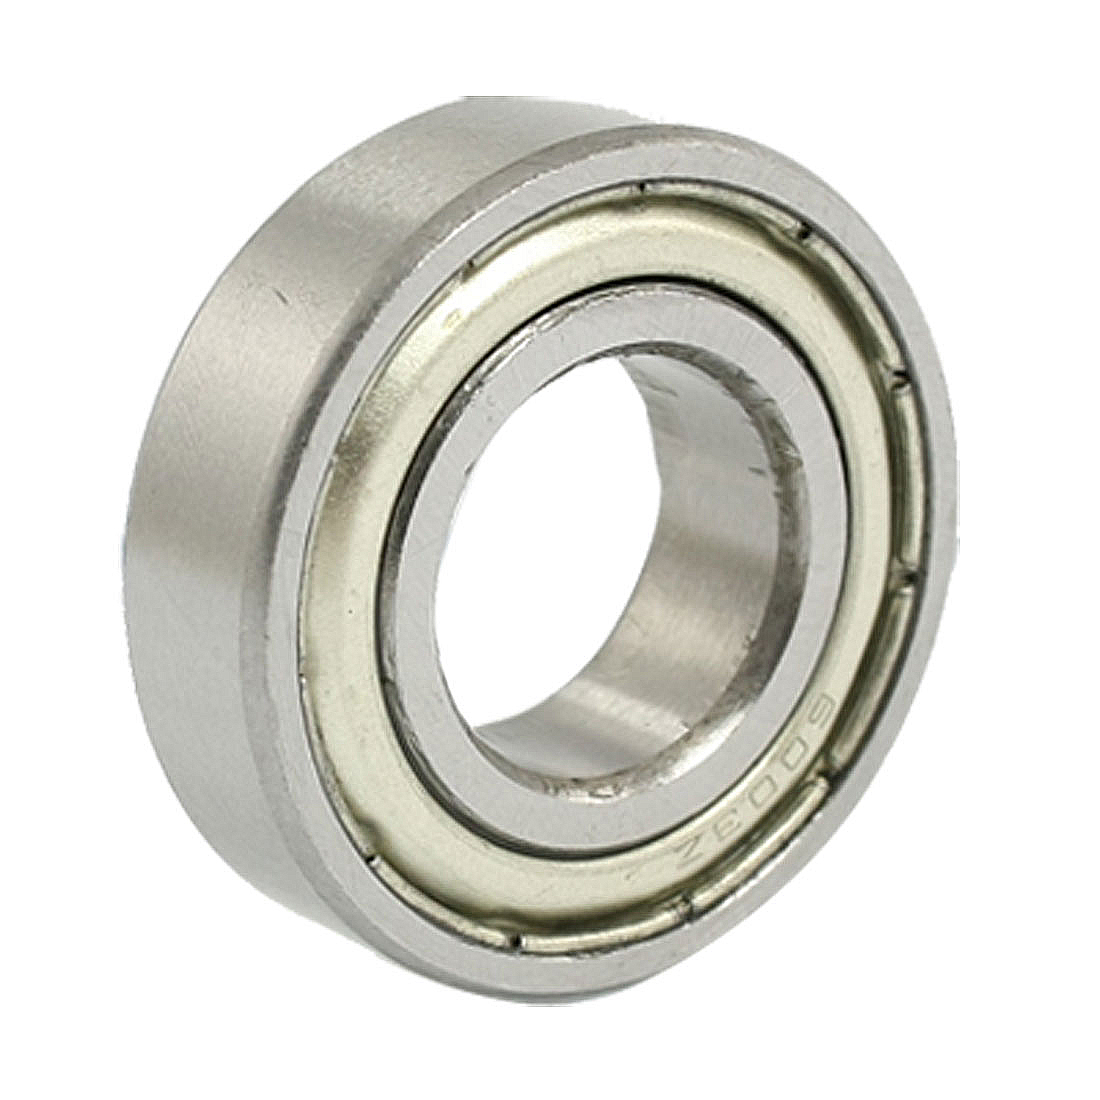 5 Pcs 6003Z 17 x 35 x 10mm Double Shield Metal Deep Groove Ball Bearings